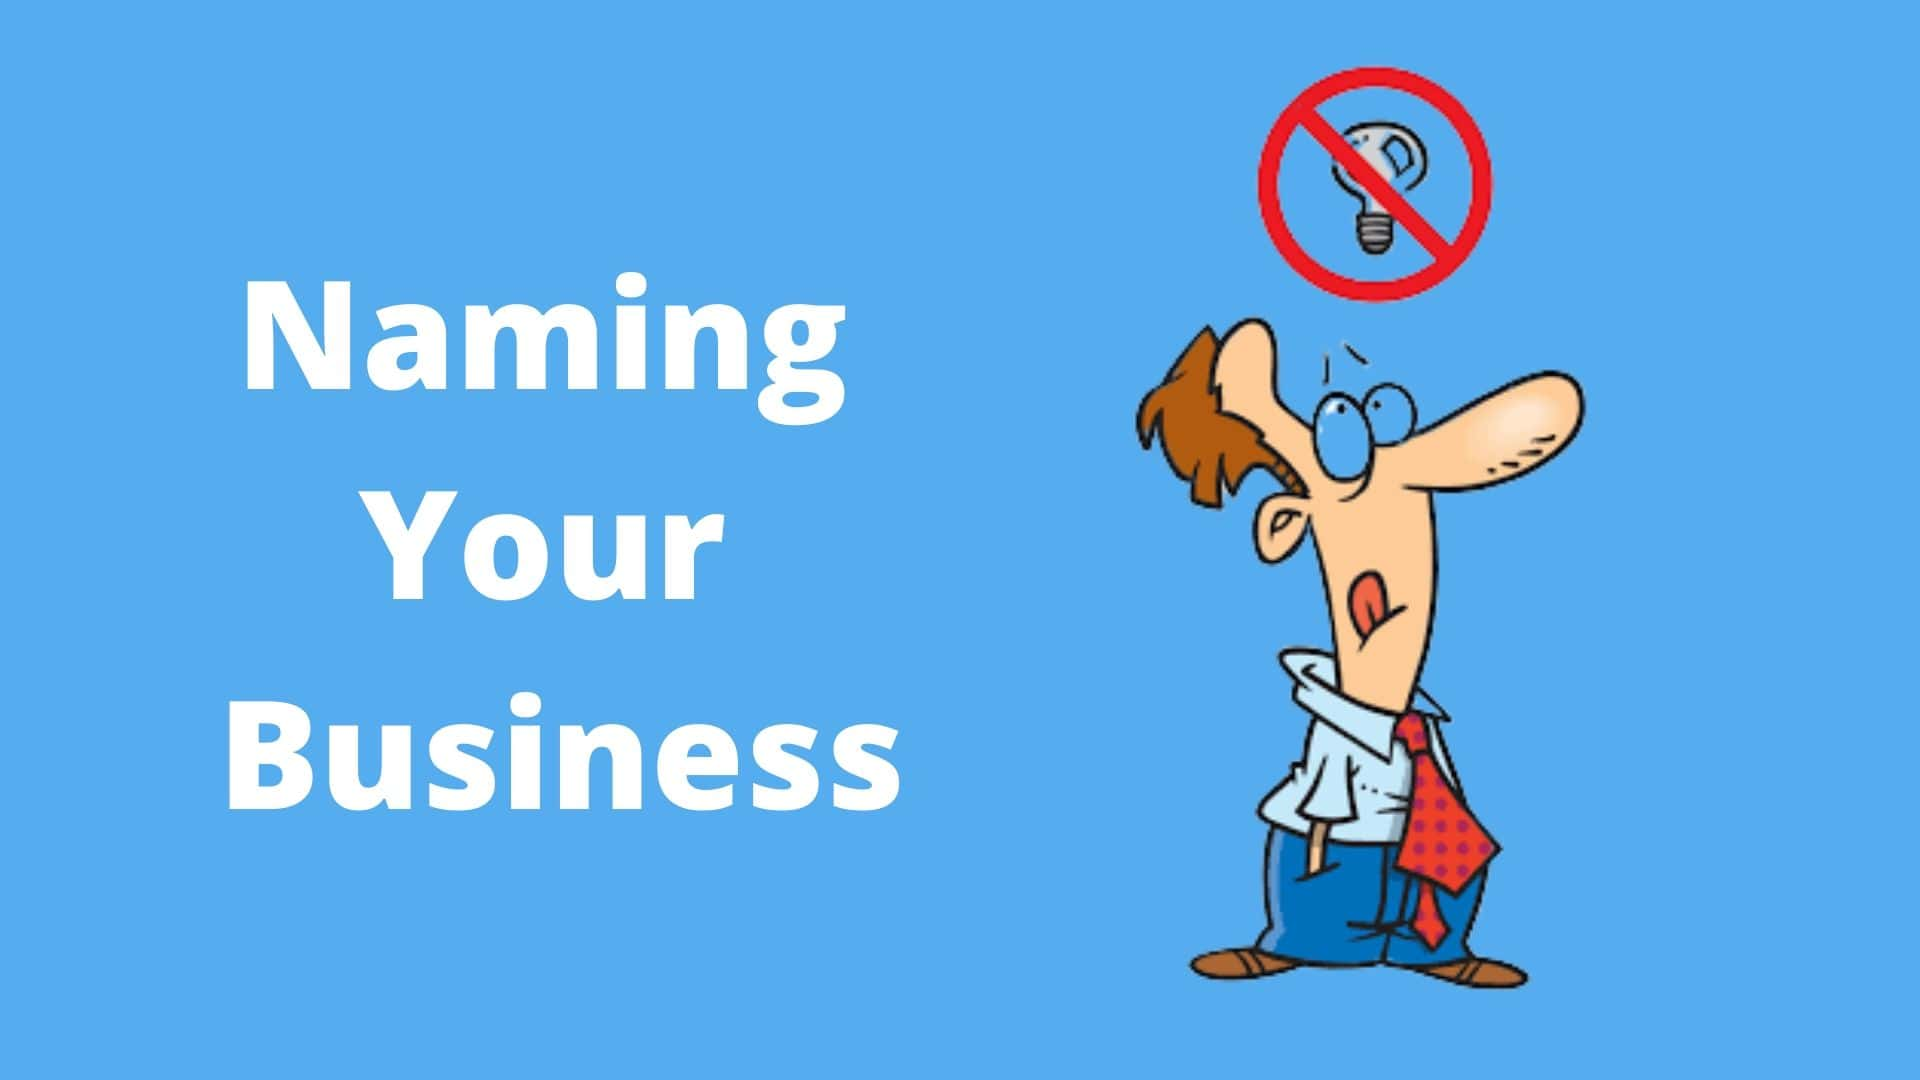 Naming Your Business - Cleaning Business